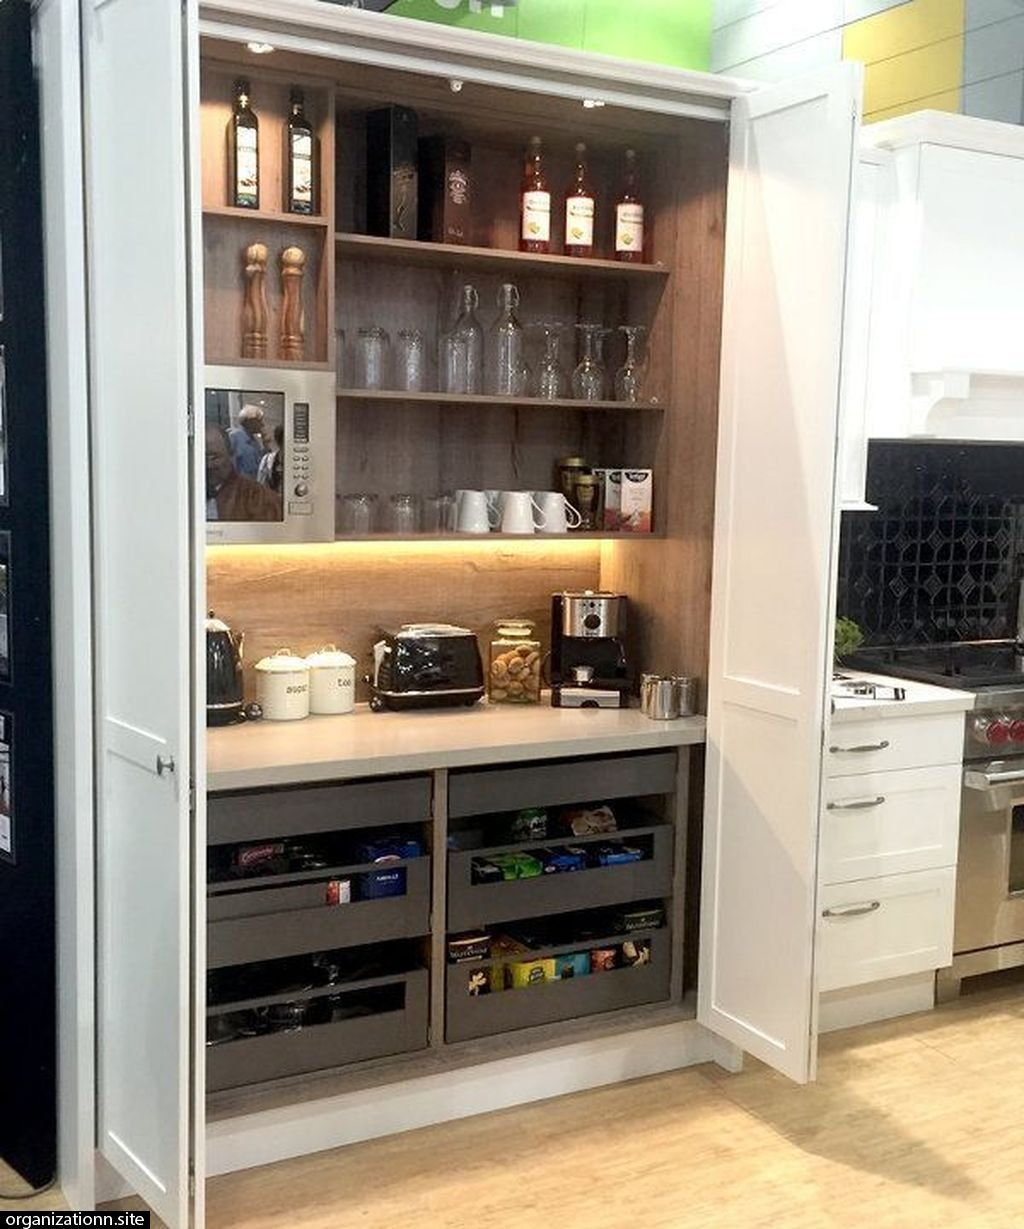 45 Creative And Innovative Kitchen Storage Options In Your House Image 9 Of 56 In 2020 Kitchen Remodel New Kitchen Cabinets Kitchen Design